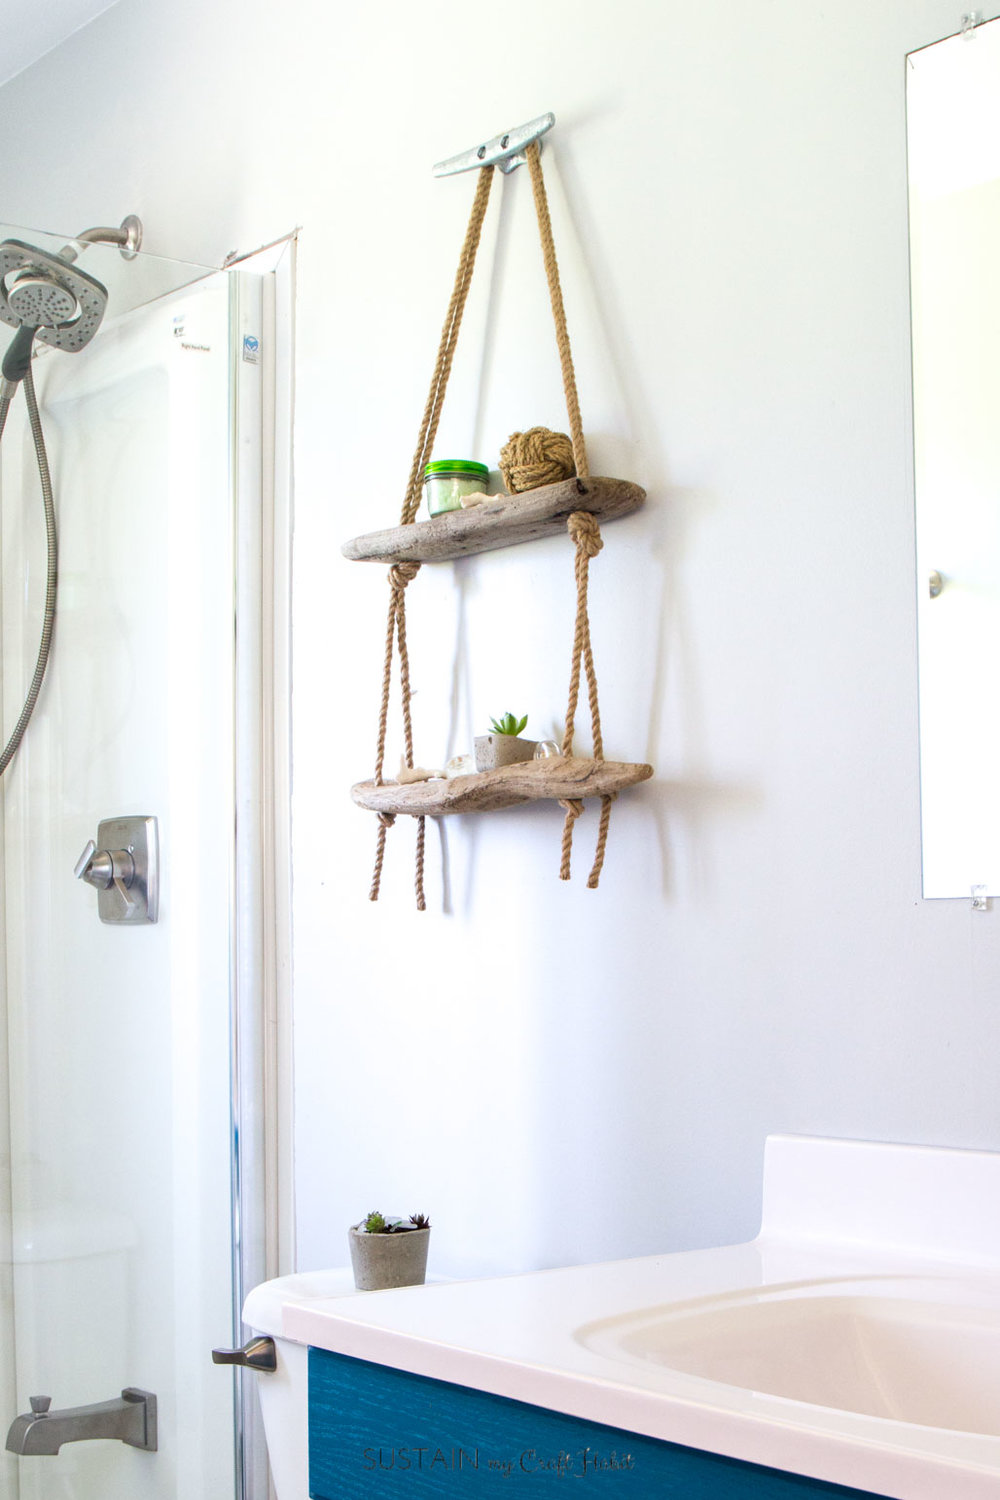 Learn how to make a hanging shelf with rope and driftwood. The perfect nautical decor for the lake house or cottage!